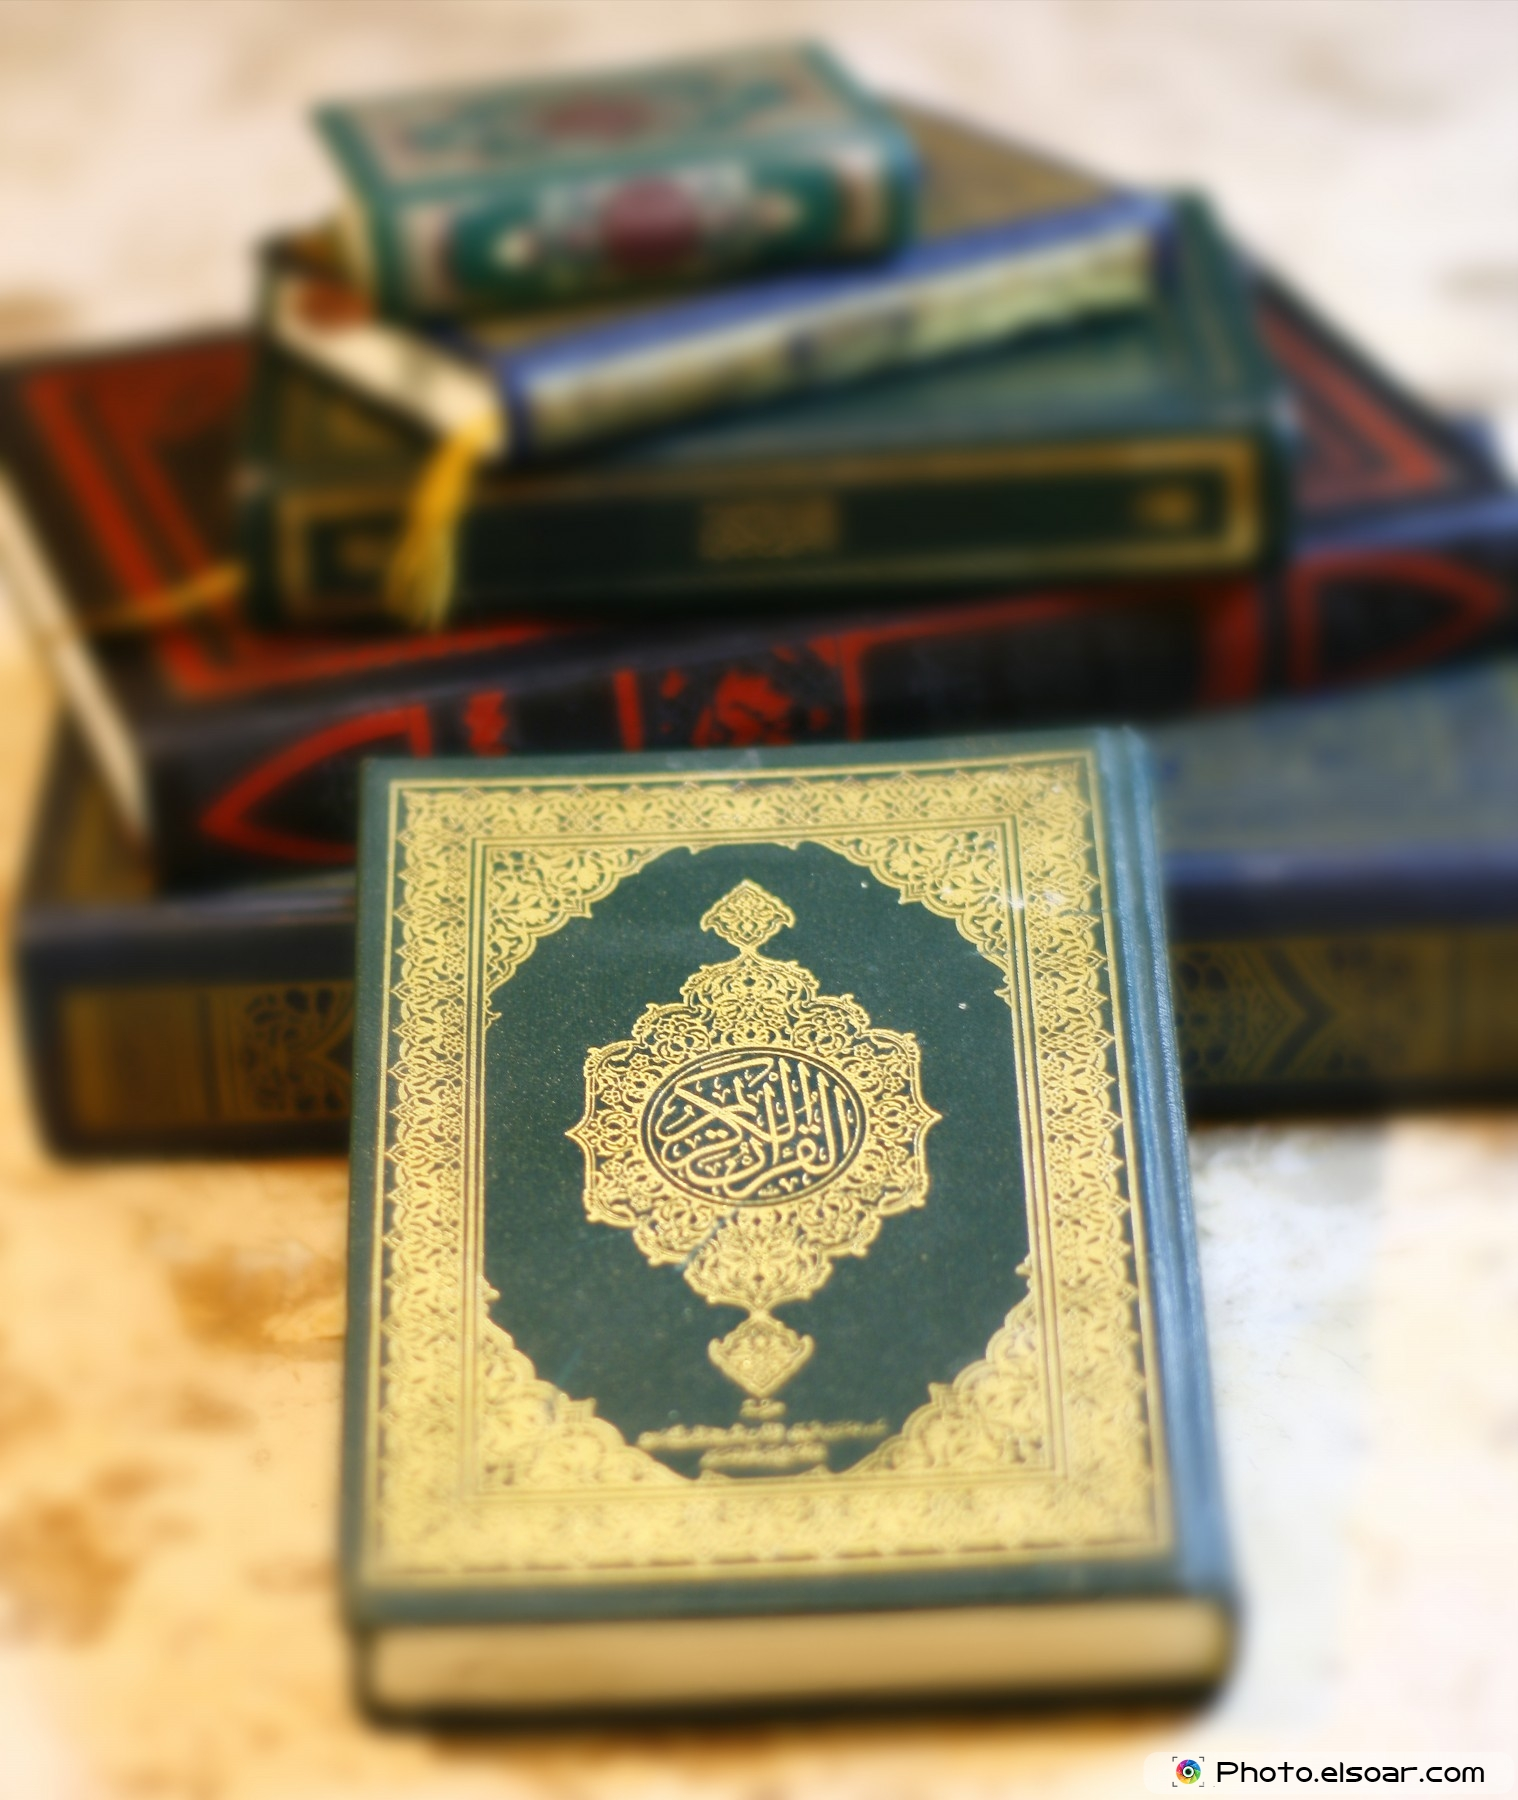 Koran, The Holy Book Of Islam. In Pictures